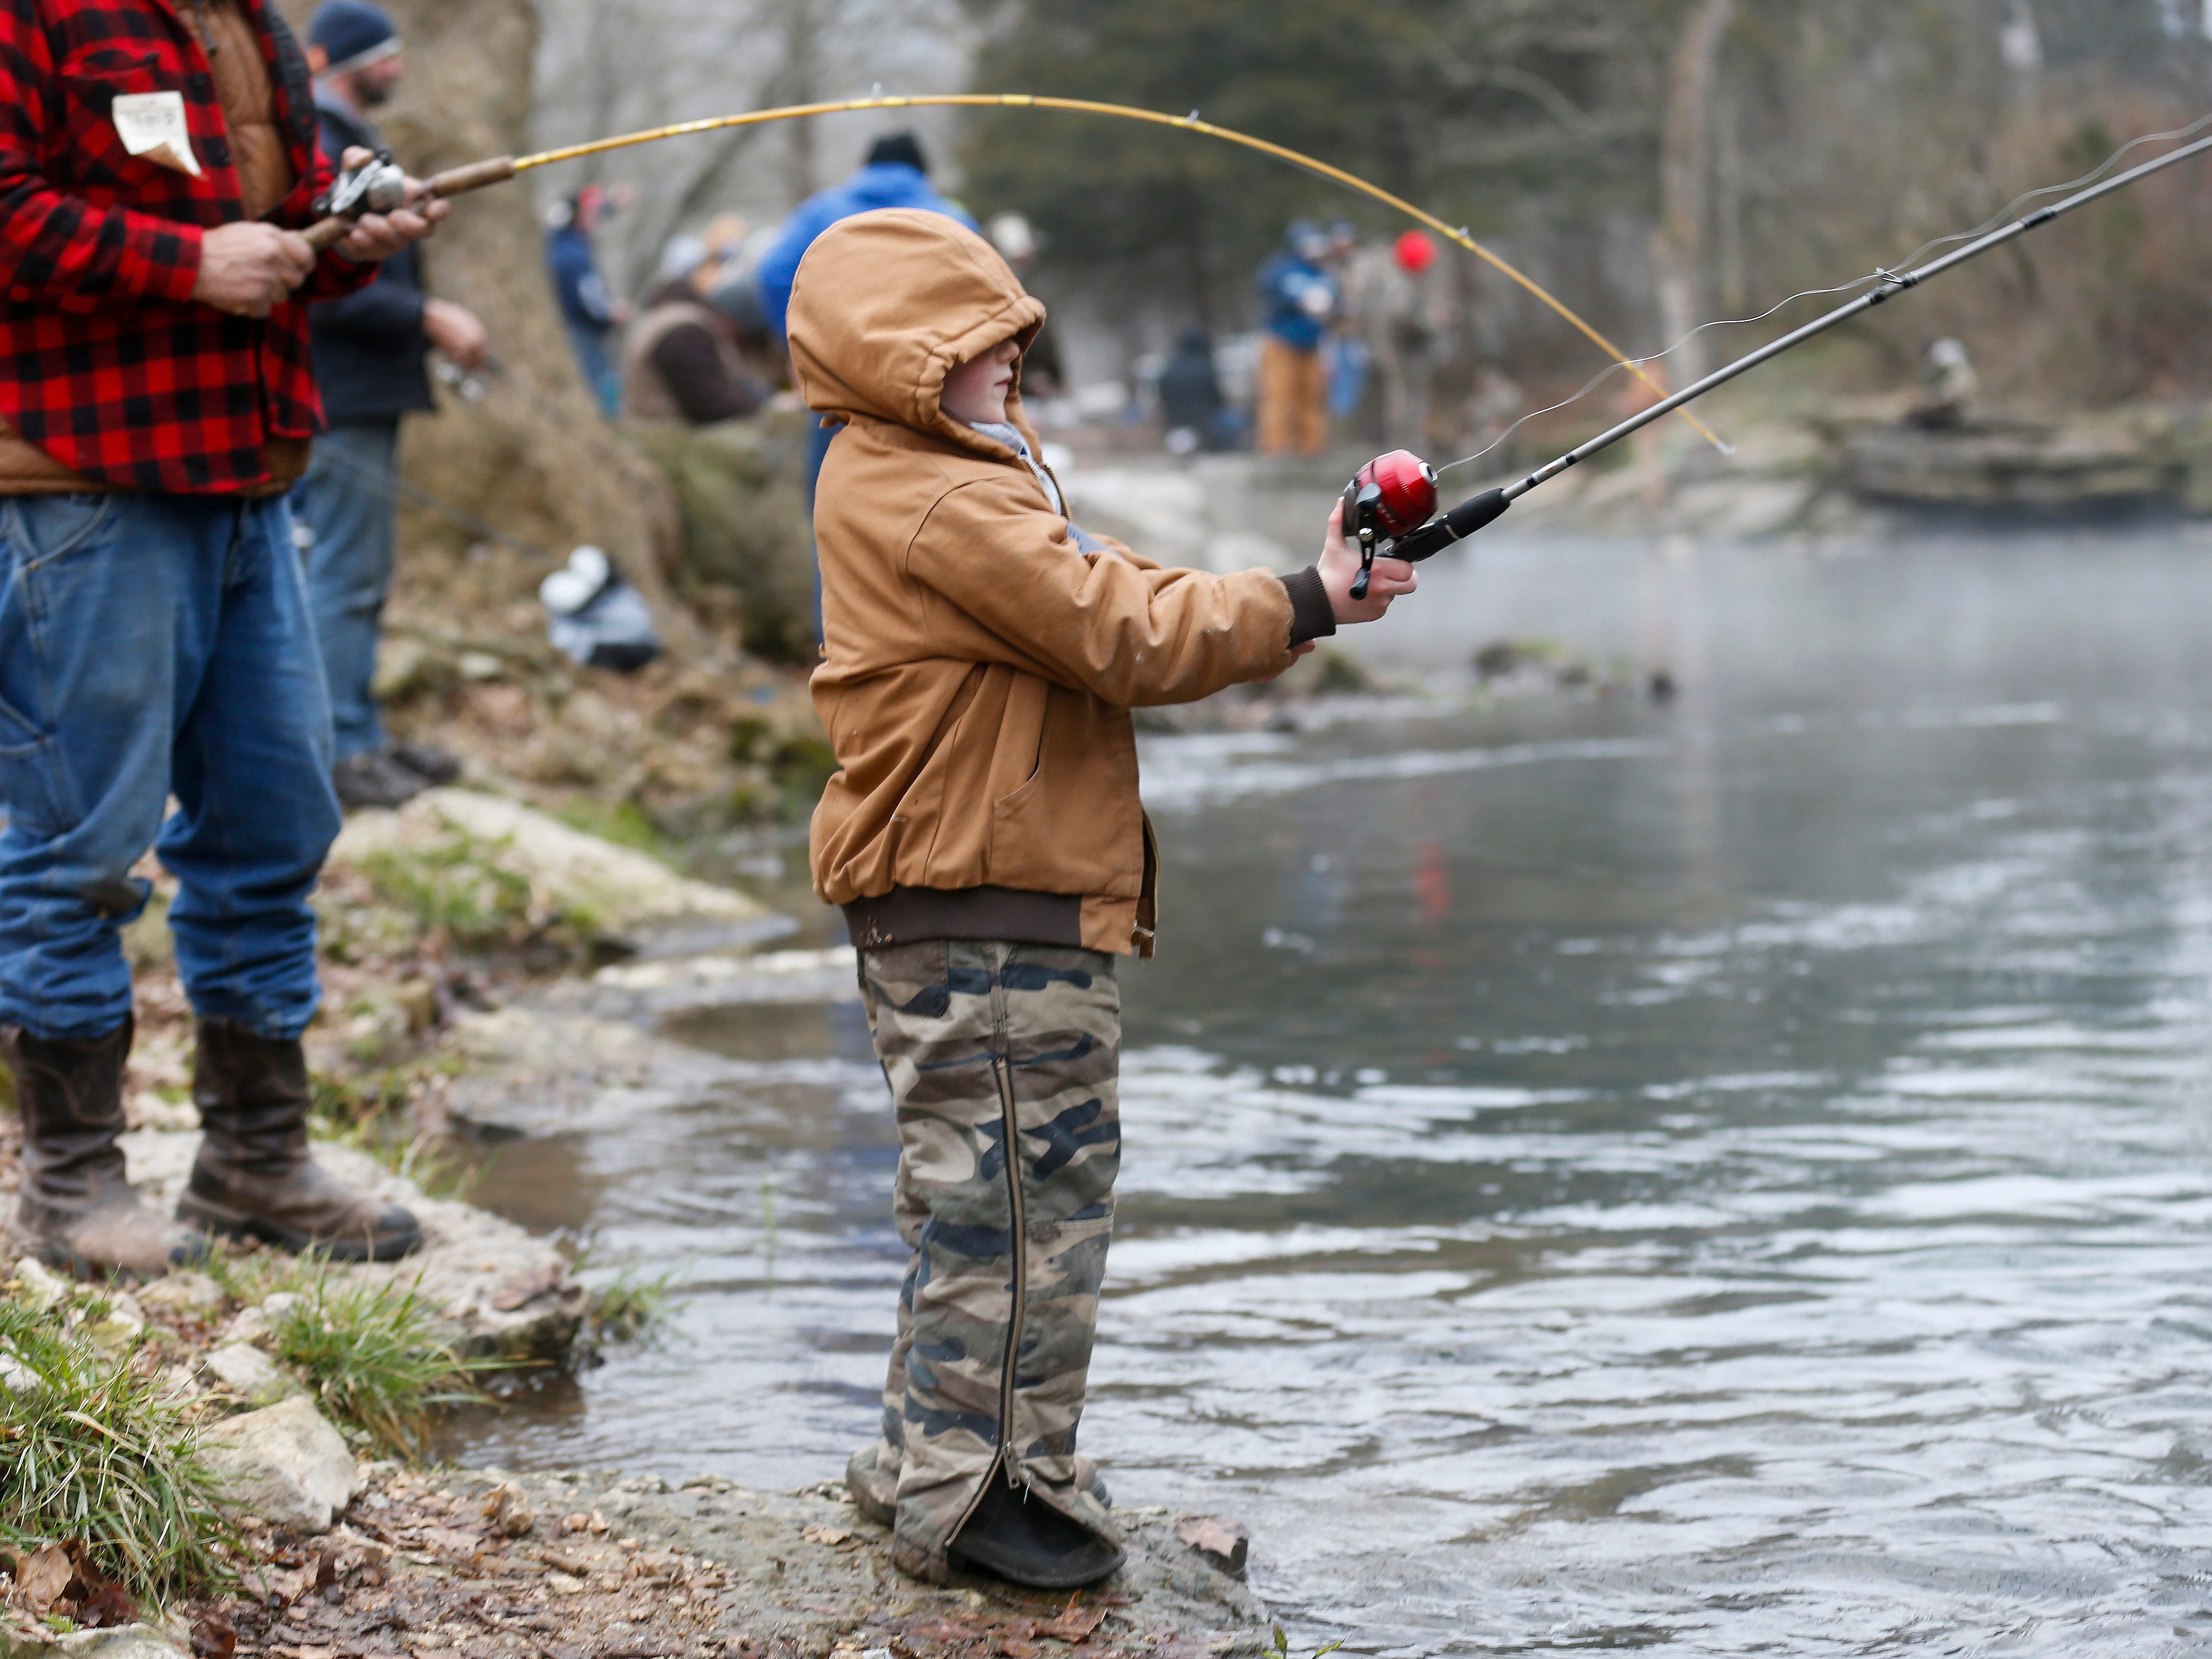 Wesley Stupperich, 6, of Diggins, MO., casts his line during opening day of trout season at Roaring River State Park on Friday, Mar. 1, 2019.